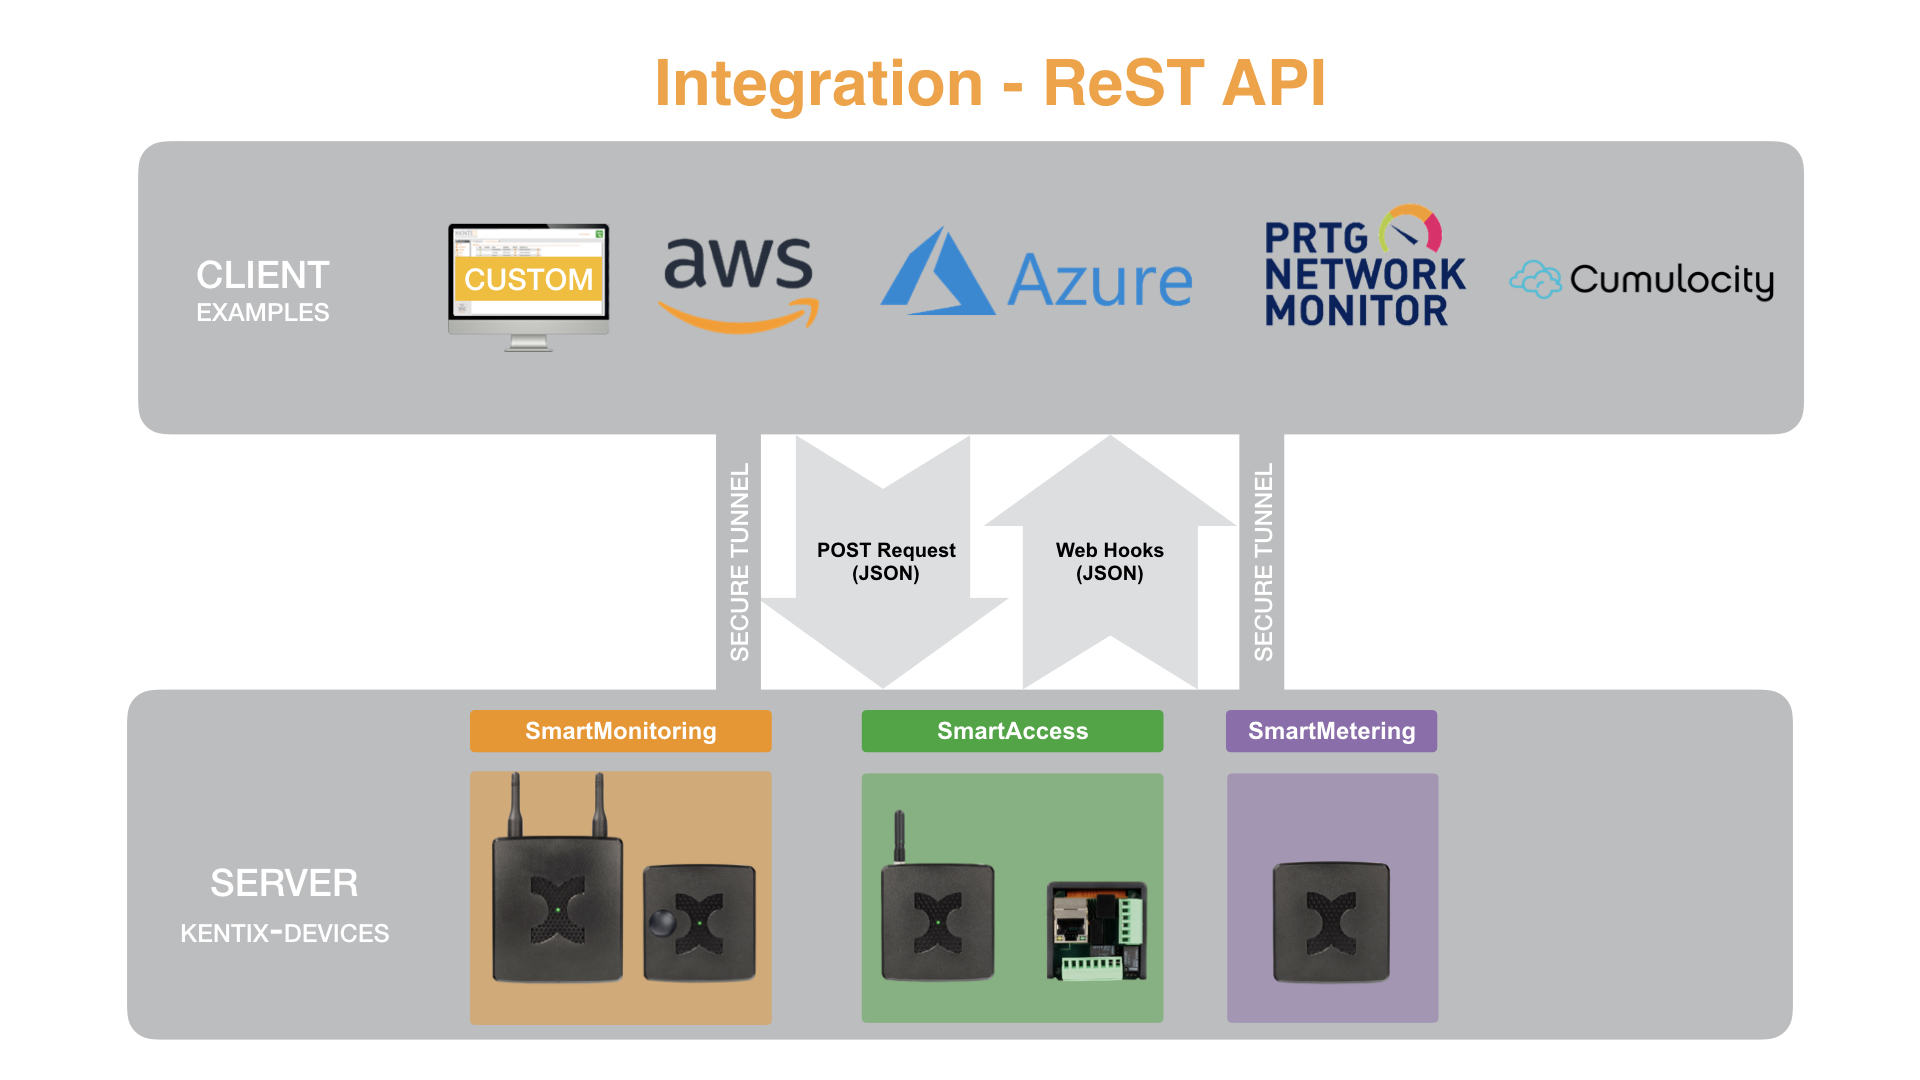 Integration ReST API